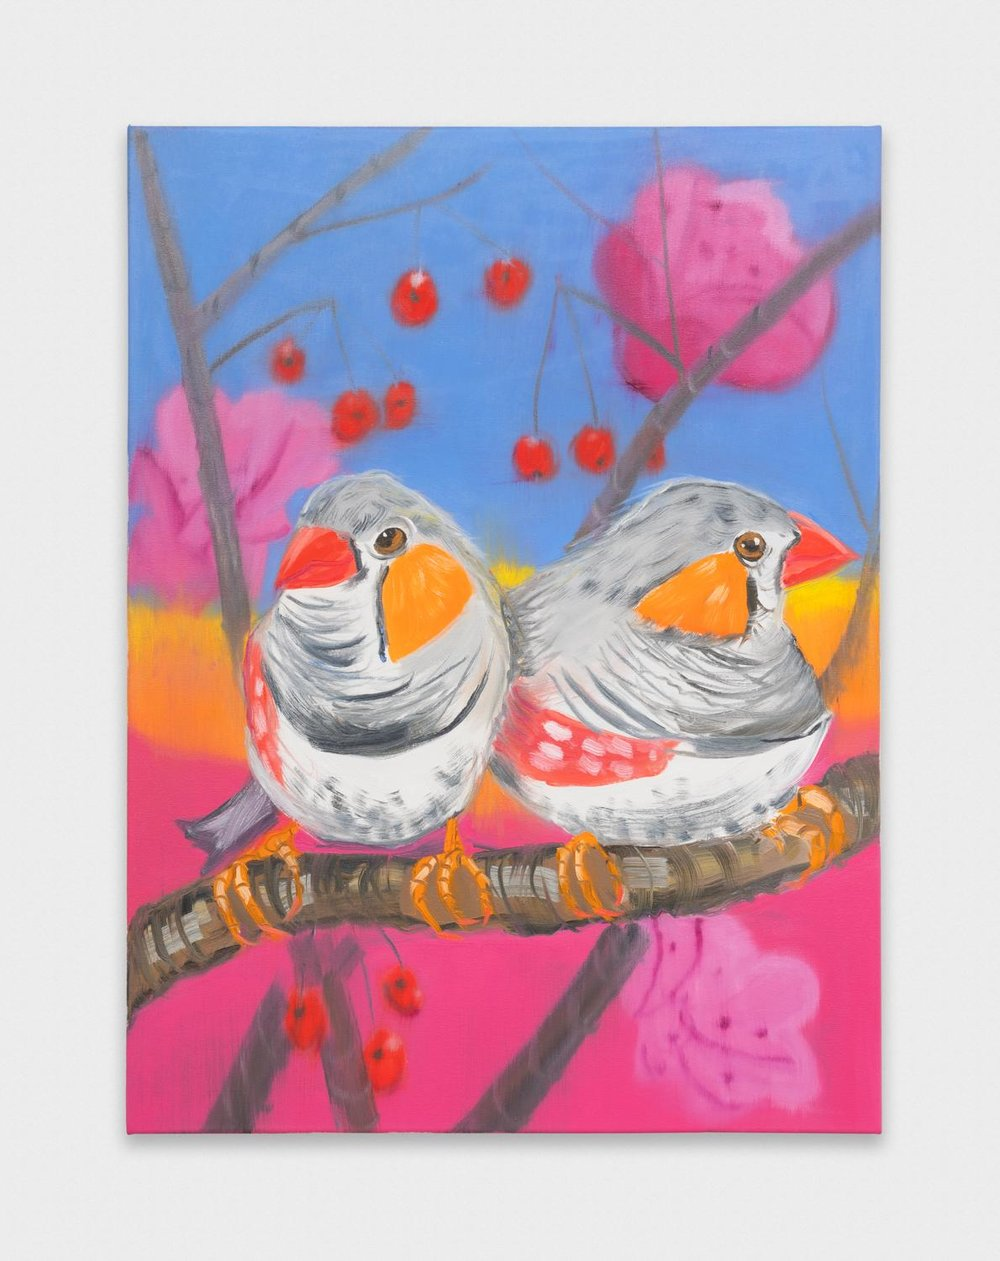 Ann Craven  Two Zebra Finches (Yellow Sunset with Cherries)  2018 Oil on canvas 40h x 30w in AC173